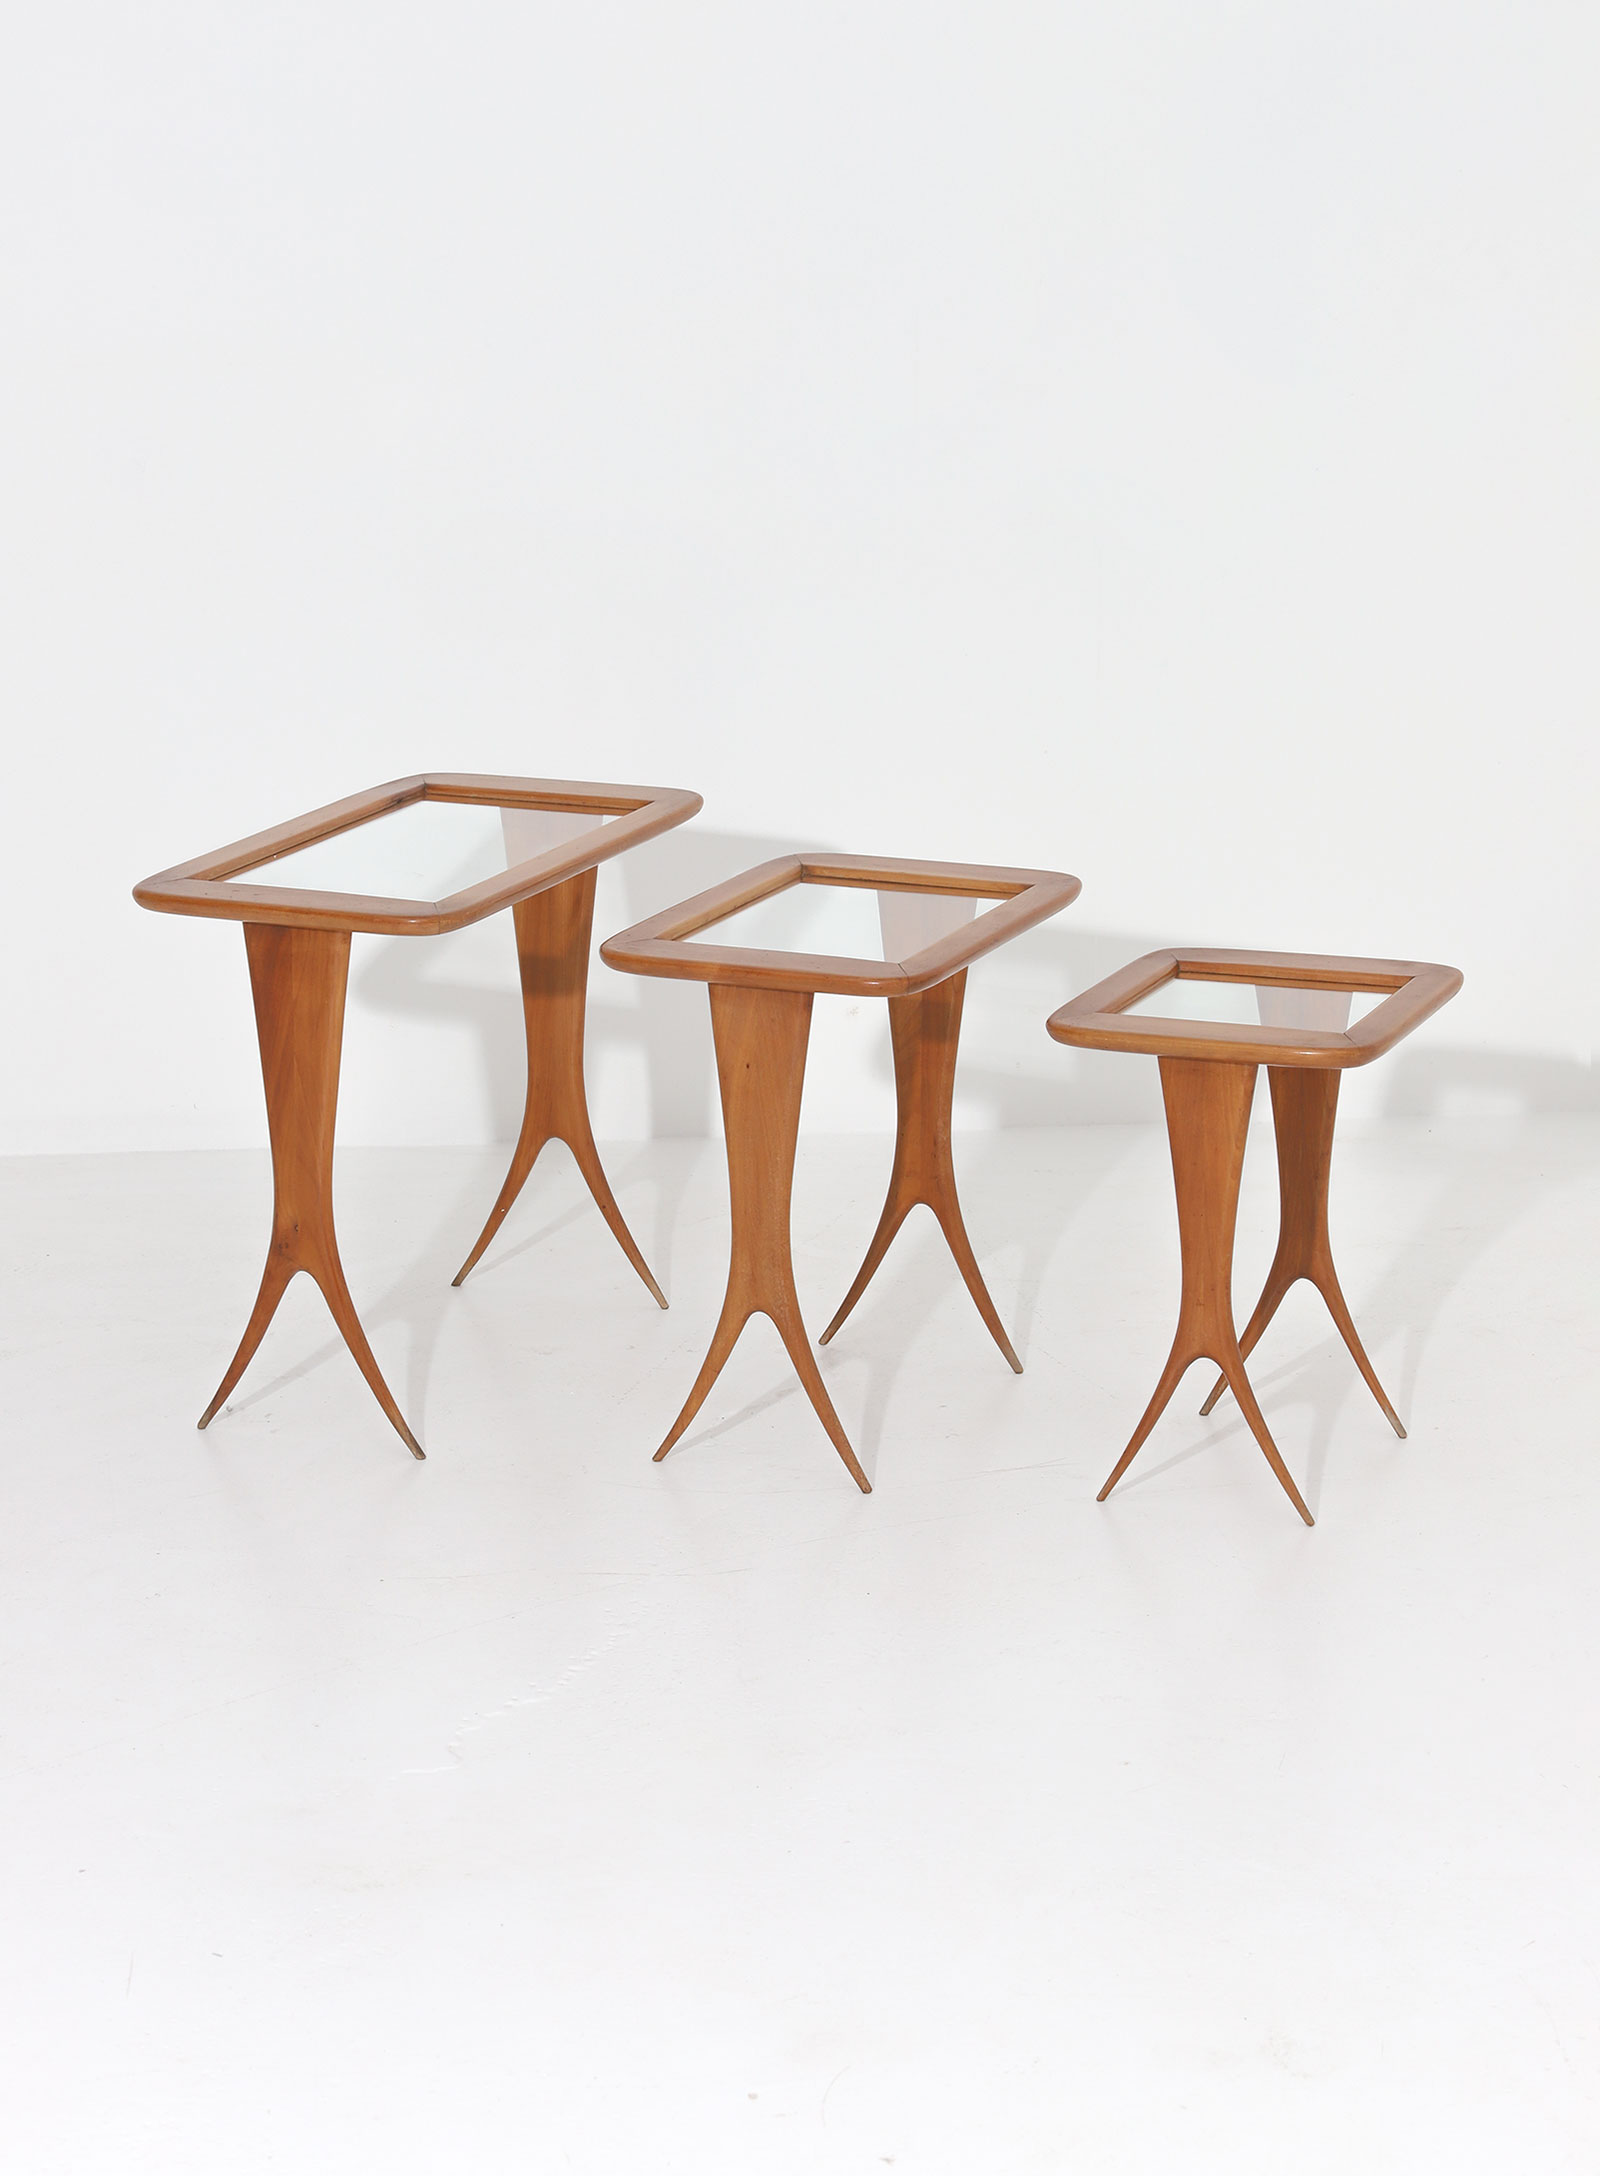 Rare 1950s nesting tables Raphaelimage 2